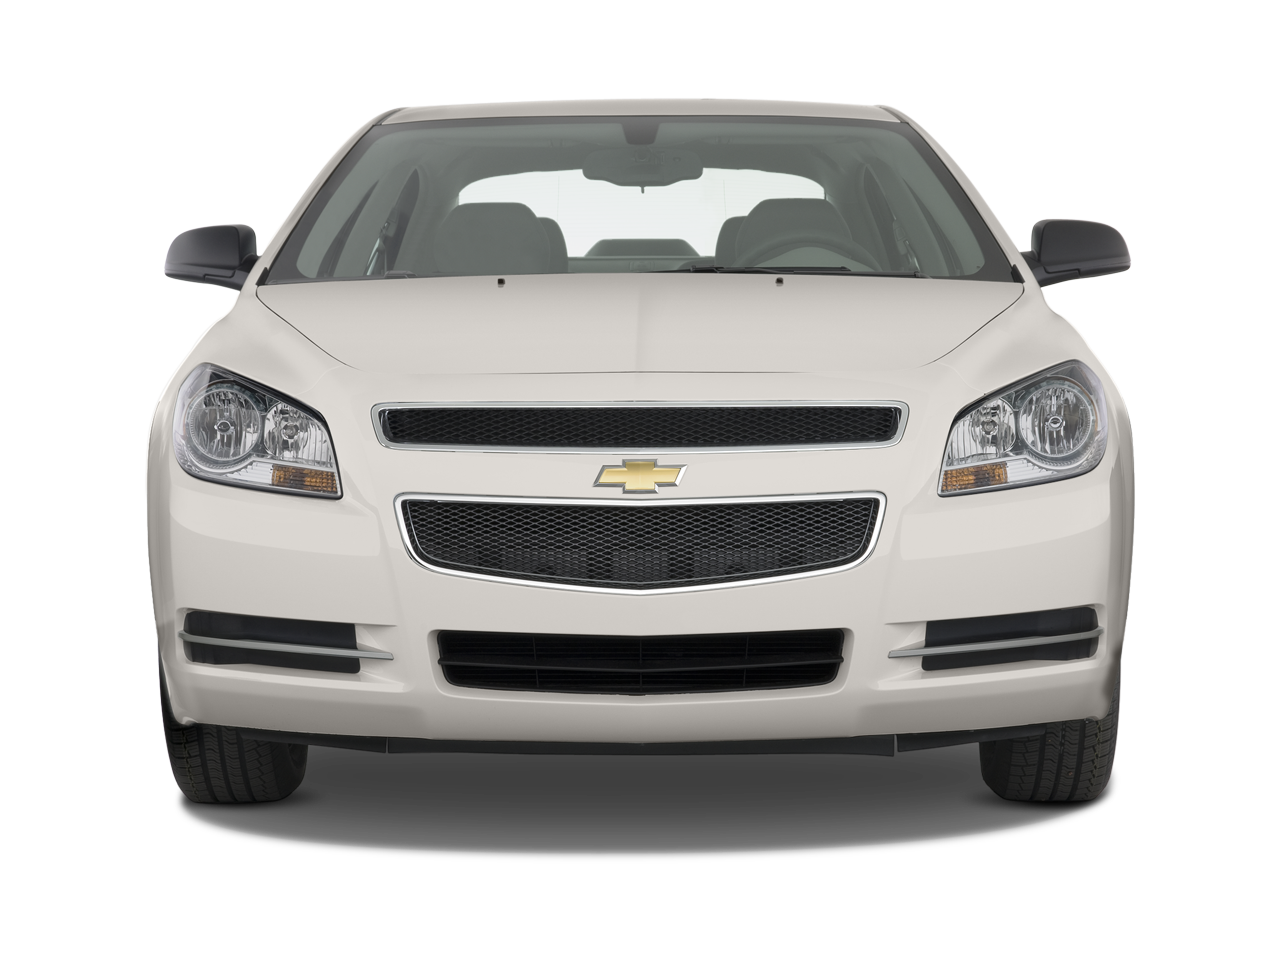 All Star 2008 Chevrolet Malibu News Features And Awards 08 Sentra Blower Motor Wiring Diagram 27 75